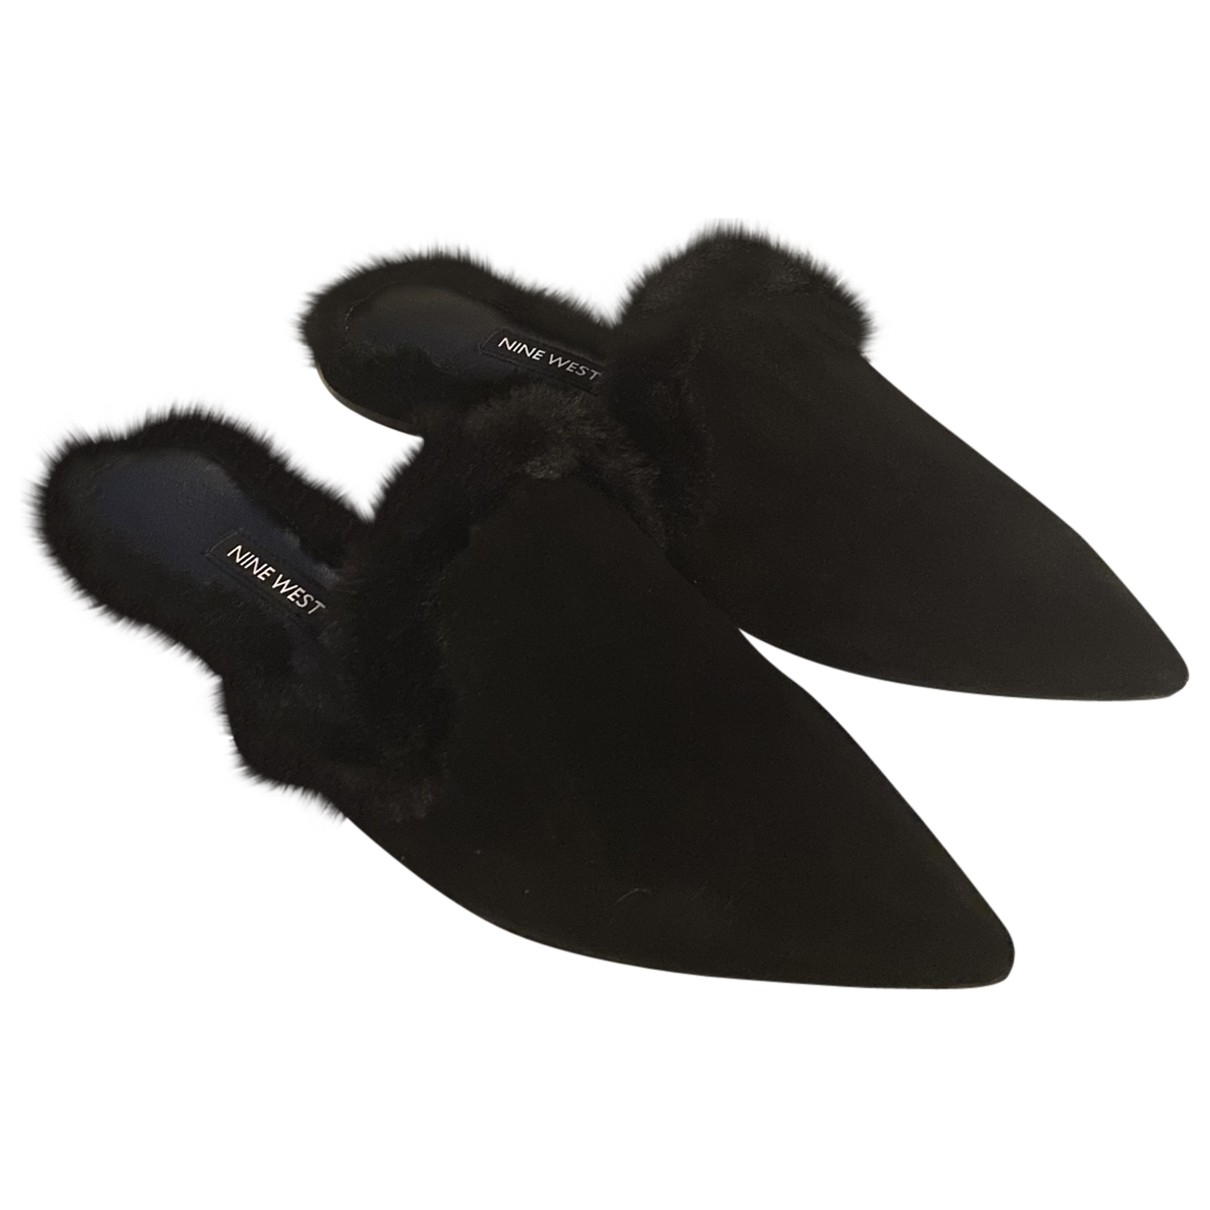 Nine West \N Black Velvet Mules & Clogs for Women 37 EU